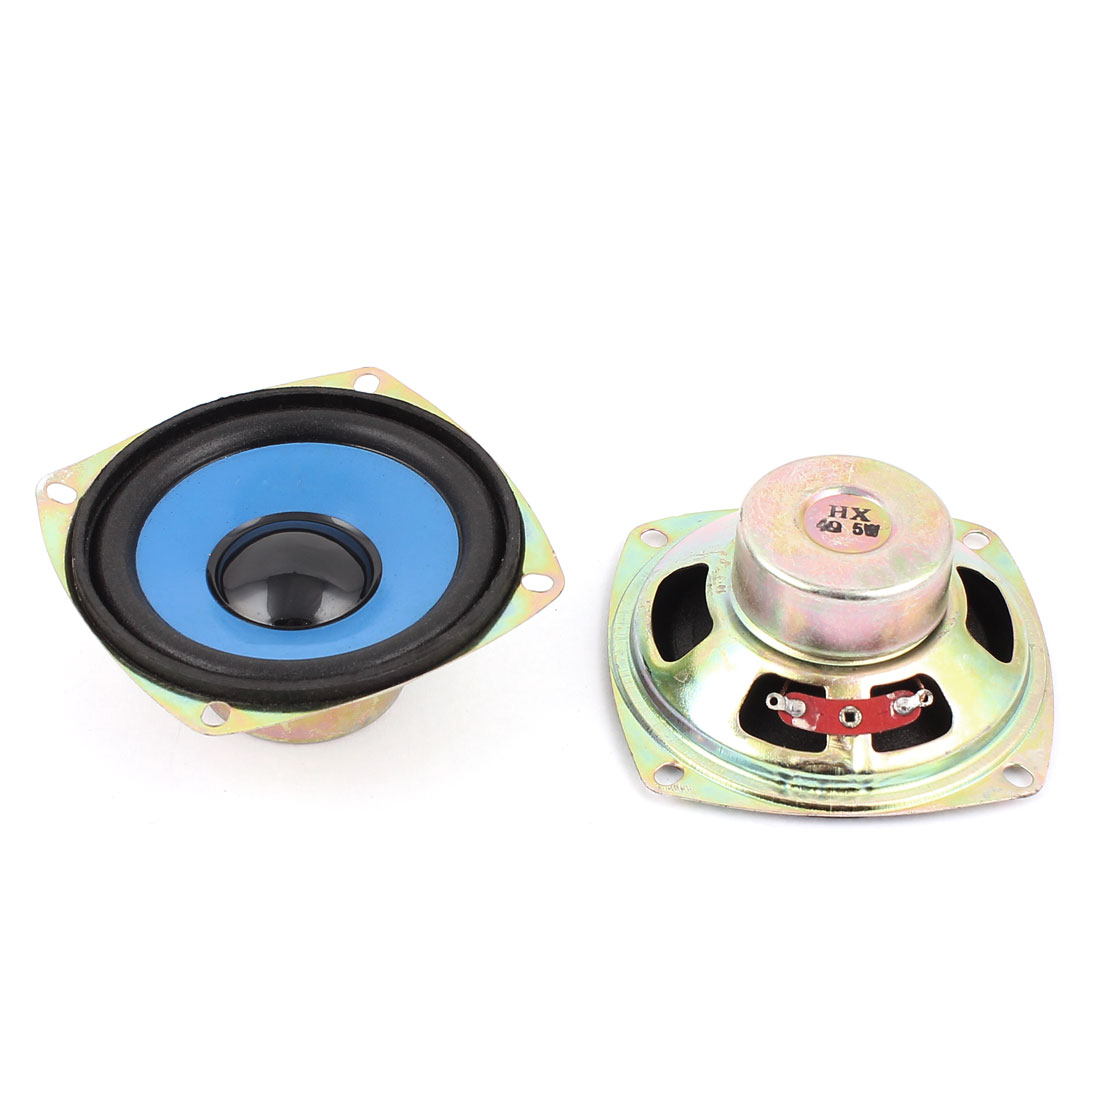 5W 4 Ohm 75mm Diameter Internal Magnet Speaker Loudspeaker 2Pcs